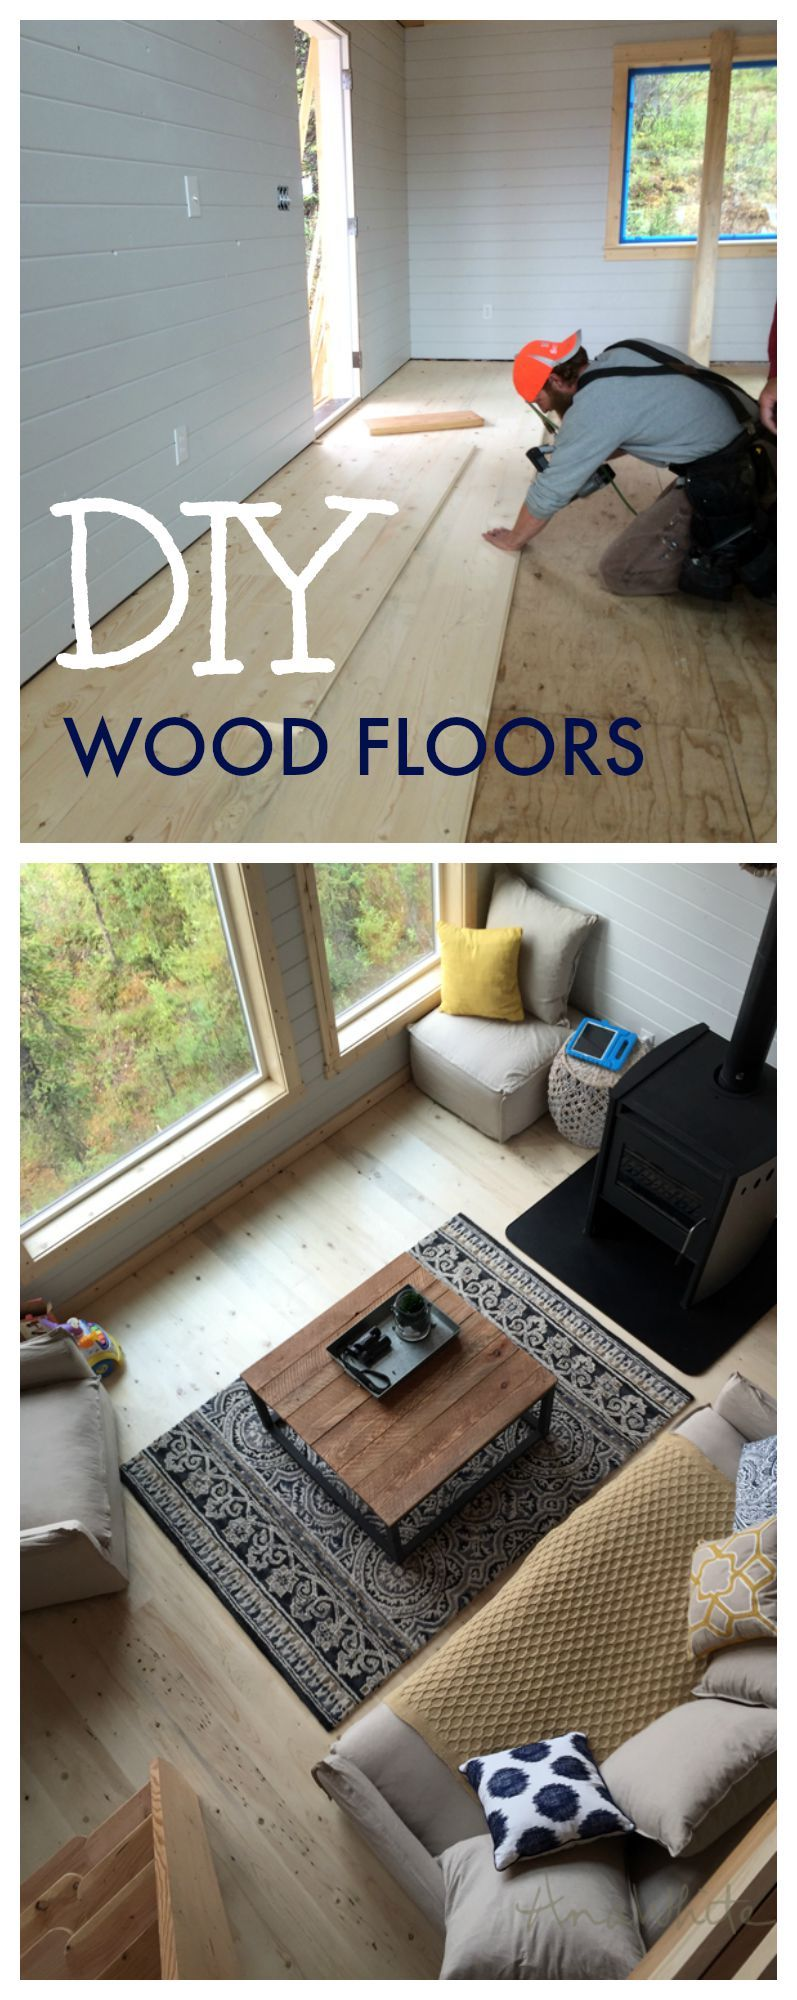 diy wood floors from 1x6 no stain just clear coat home diy tutorials. Black Bedroom Furniture Sets. Home Design Ideas